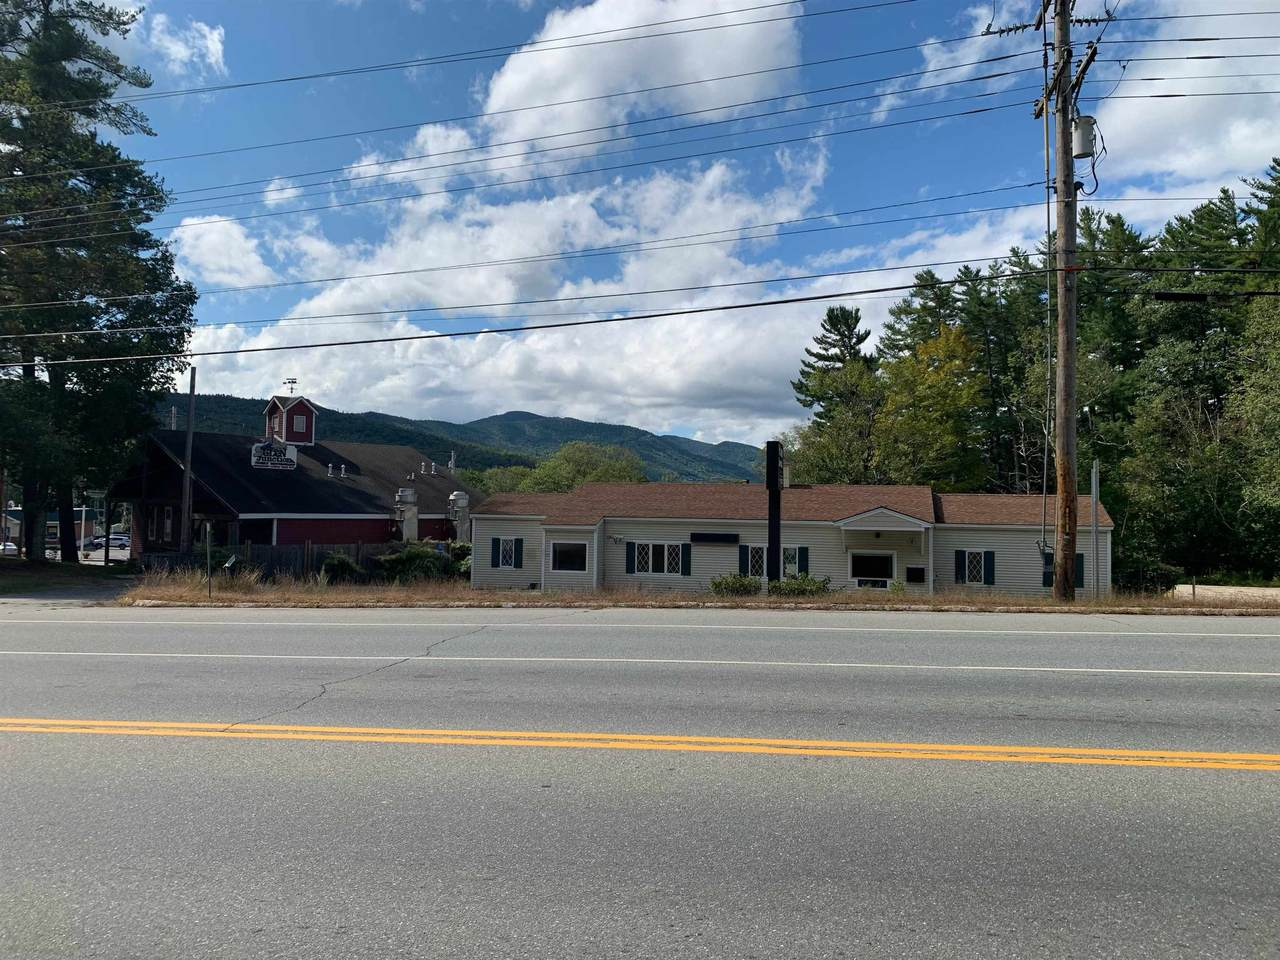 769 Nh Route 16 - Photo 1